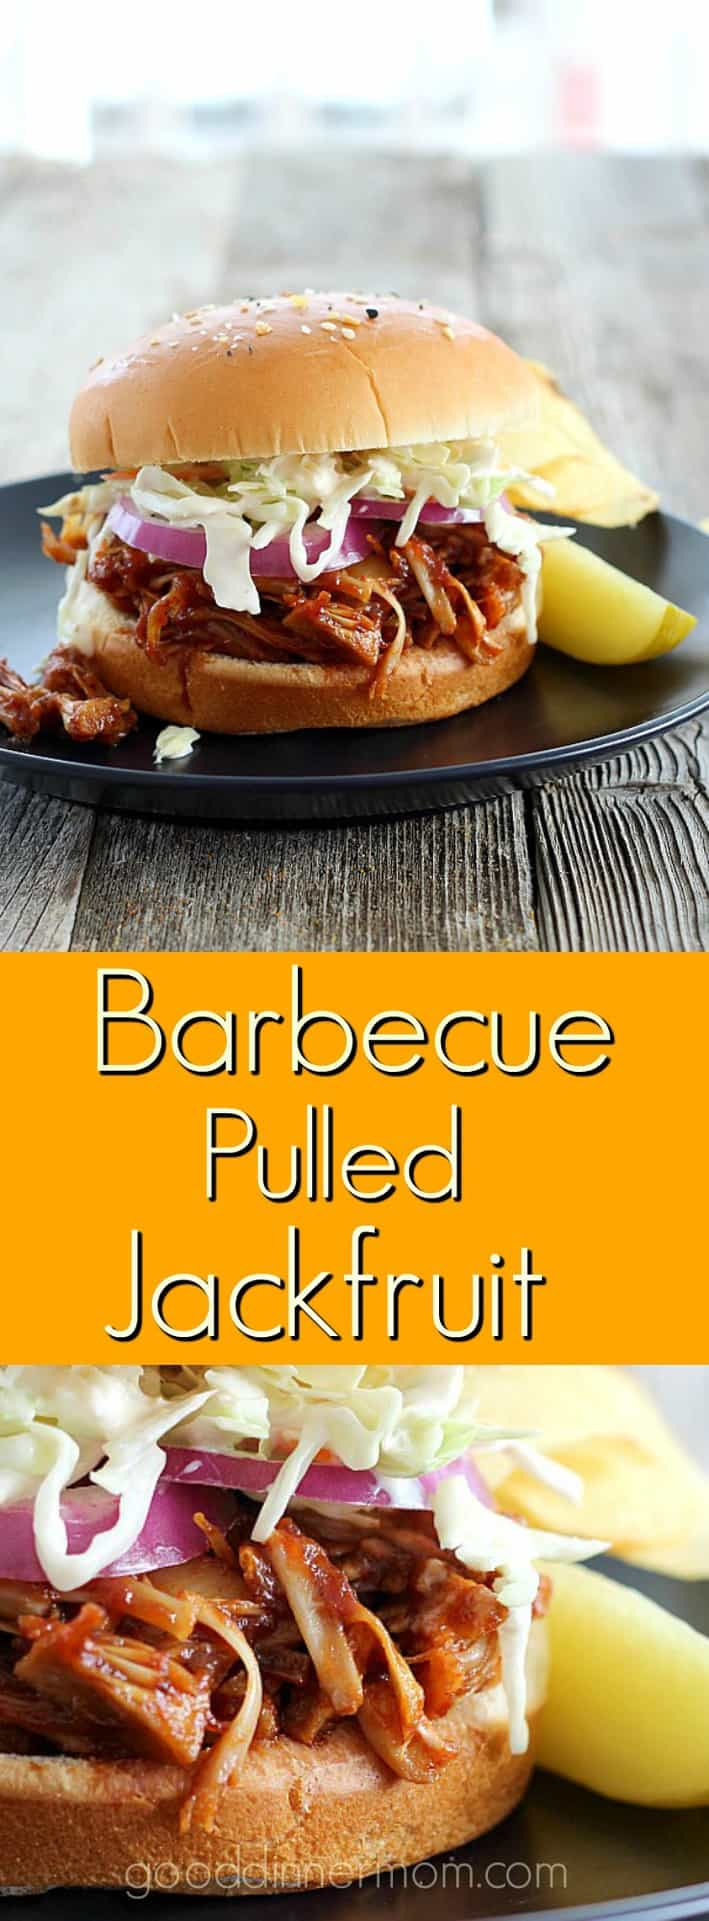 Barbecue Pulled Jackfruit is super fast, delicious, and significantly lower in calories than pulled pork shoulder. #jackfruit #BBQsandwich